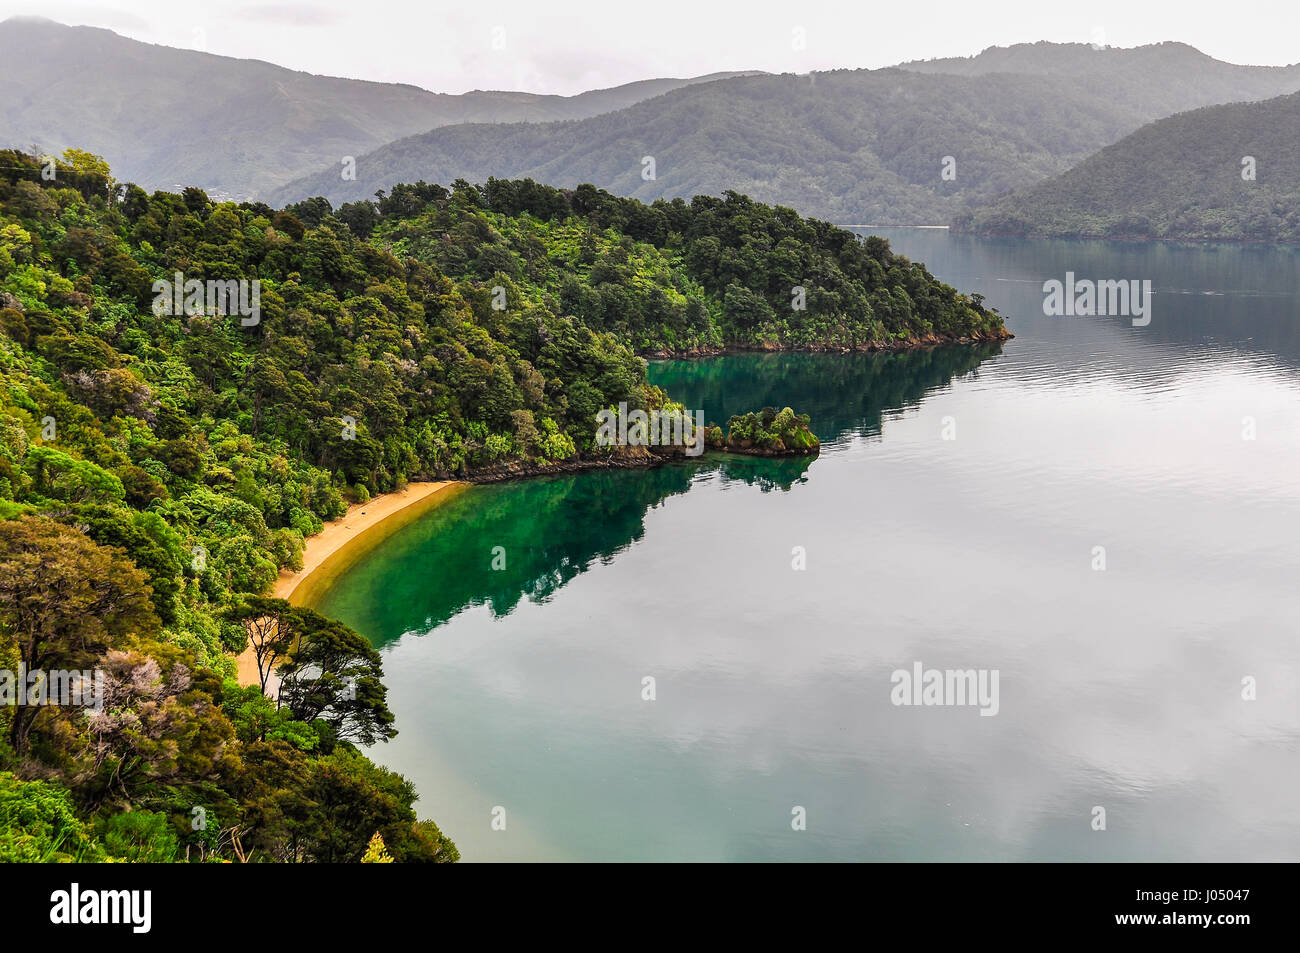 View of bays around the sounds near Queen Charlotte Road, New Zealand - Stock Image